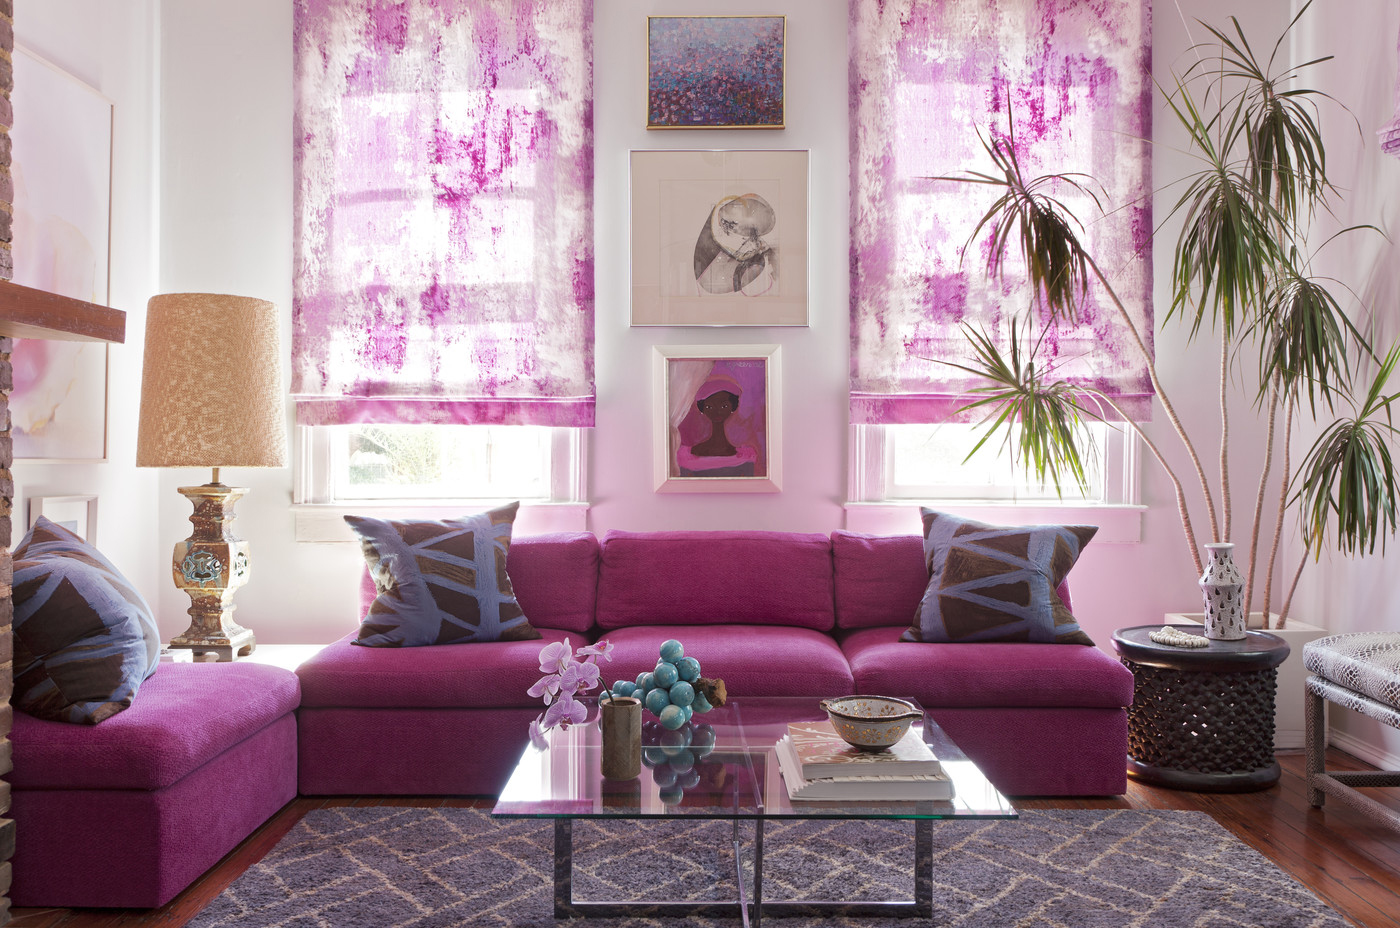 Radiant-orchid-living-room-decor